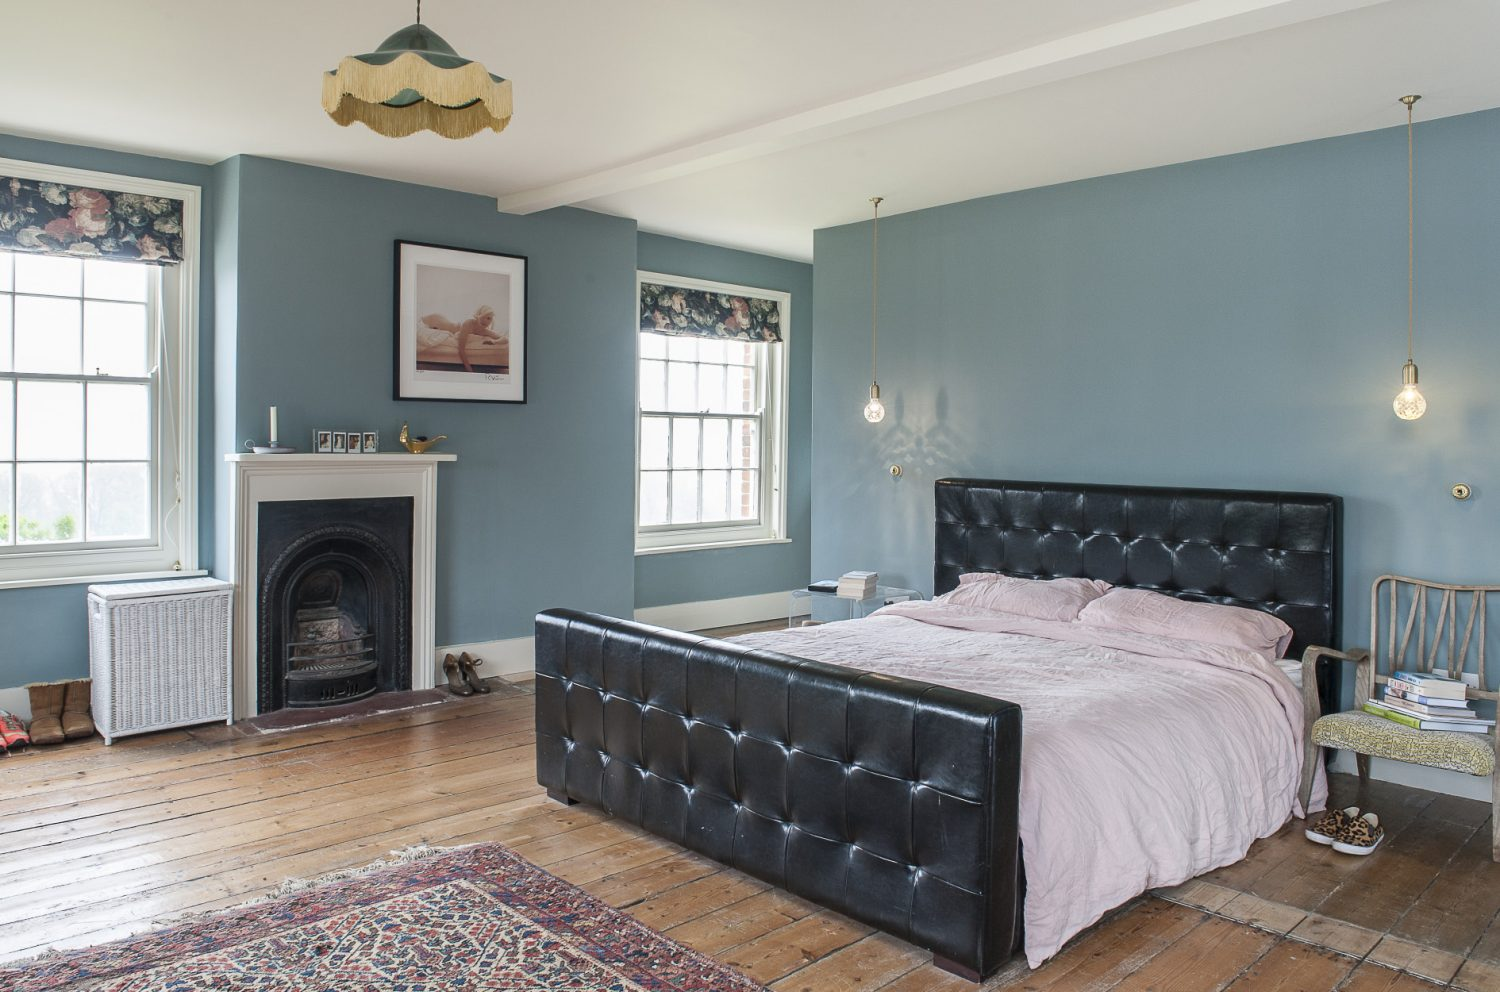 Sally and Rob created the double-aspect master bedroom and en suite from two original rooms. The walls are in F&B Oval Room Blue and the dark blue floral blinds are from House of Hackney. A limited edition print of Marilyn Monroe by Bert Stern and a delicate limited edition Tracey Emin line drawing of Kate Moss are hung on the walls